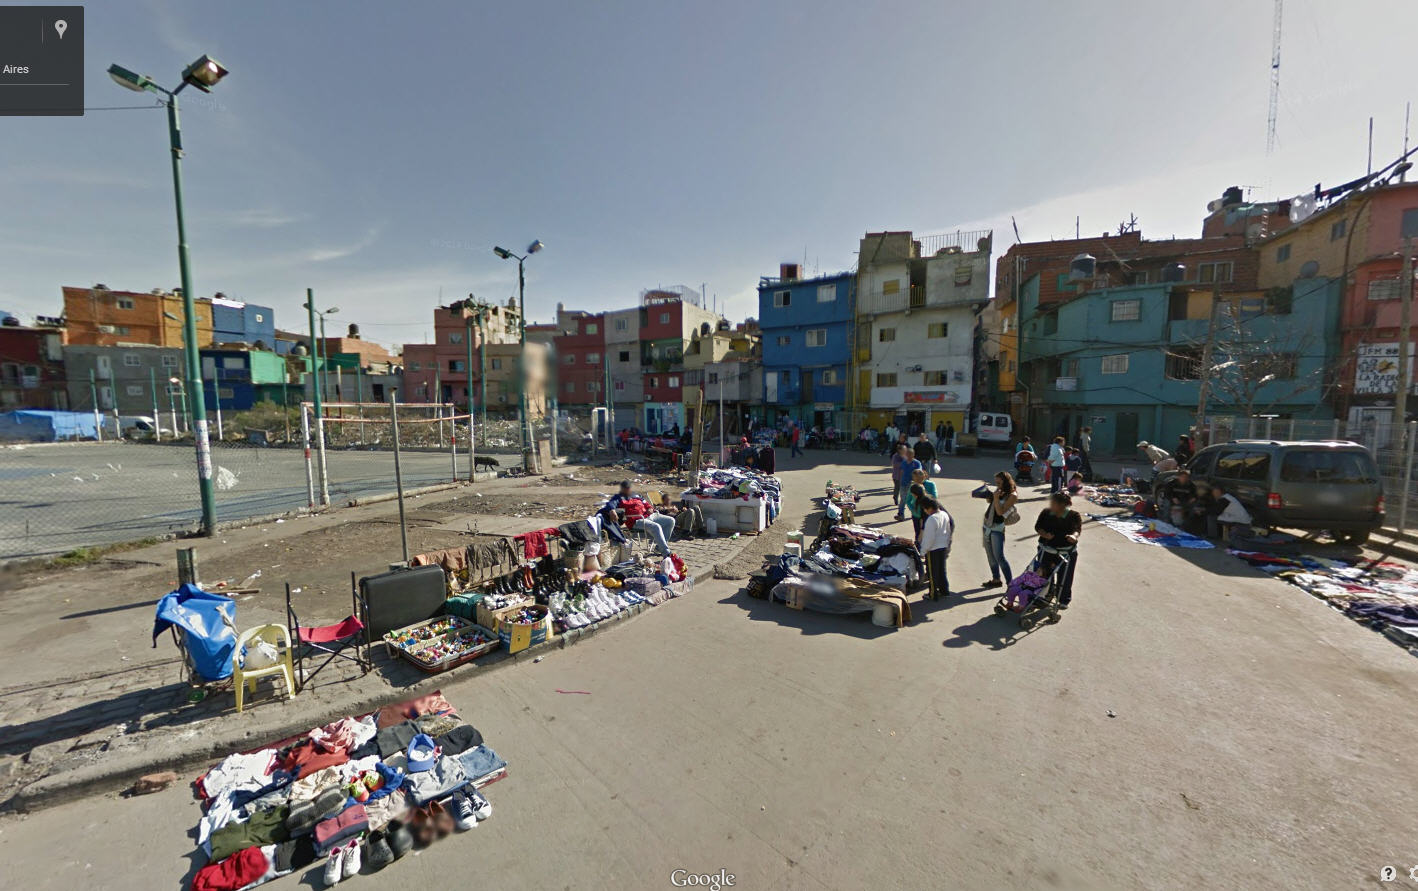 Google Street View Argentina is Now Live!